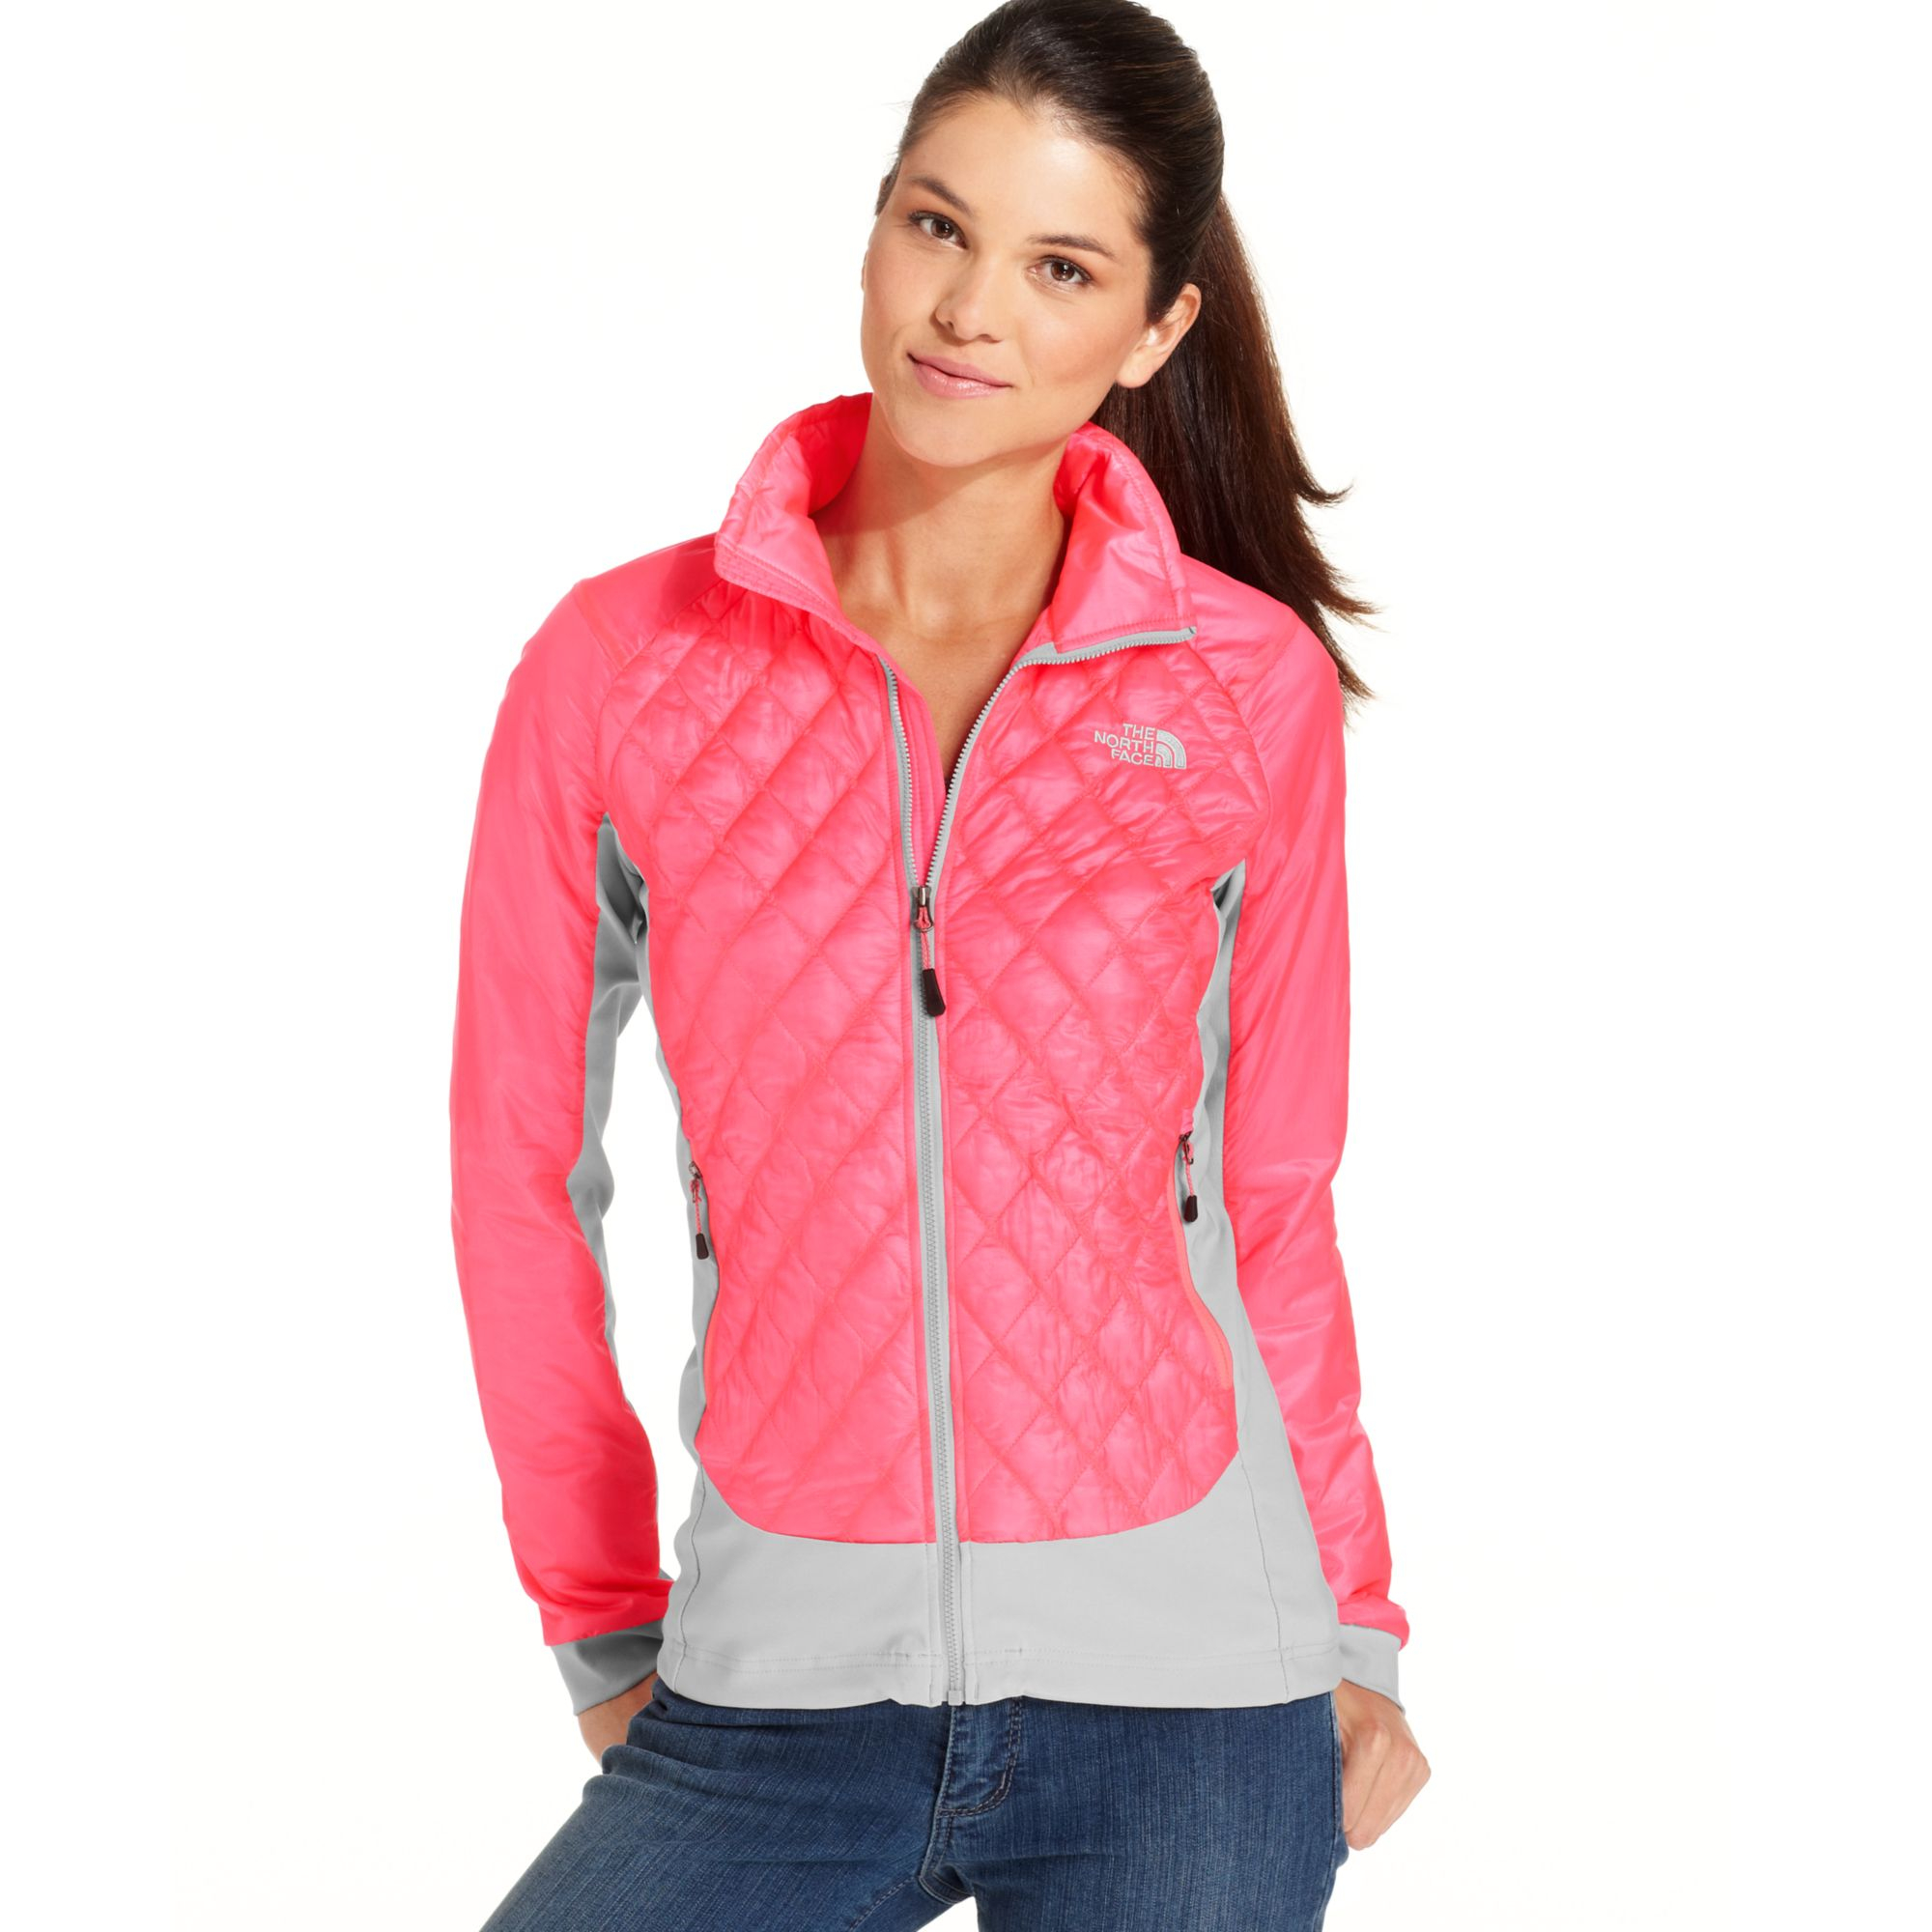 coupon code lyst the north face thermoball quilted jacket in pink 5f7e2  8075d aea0b7f7f